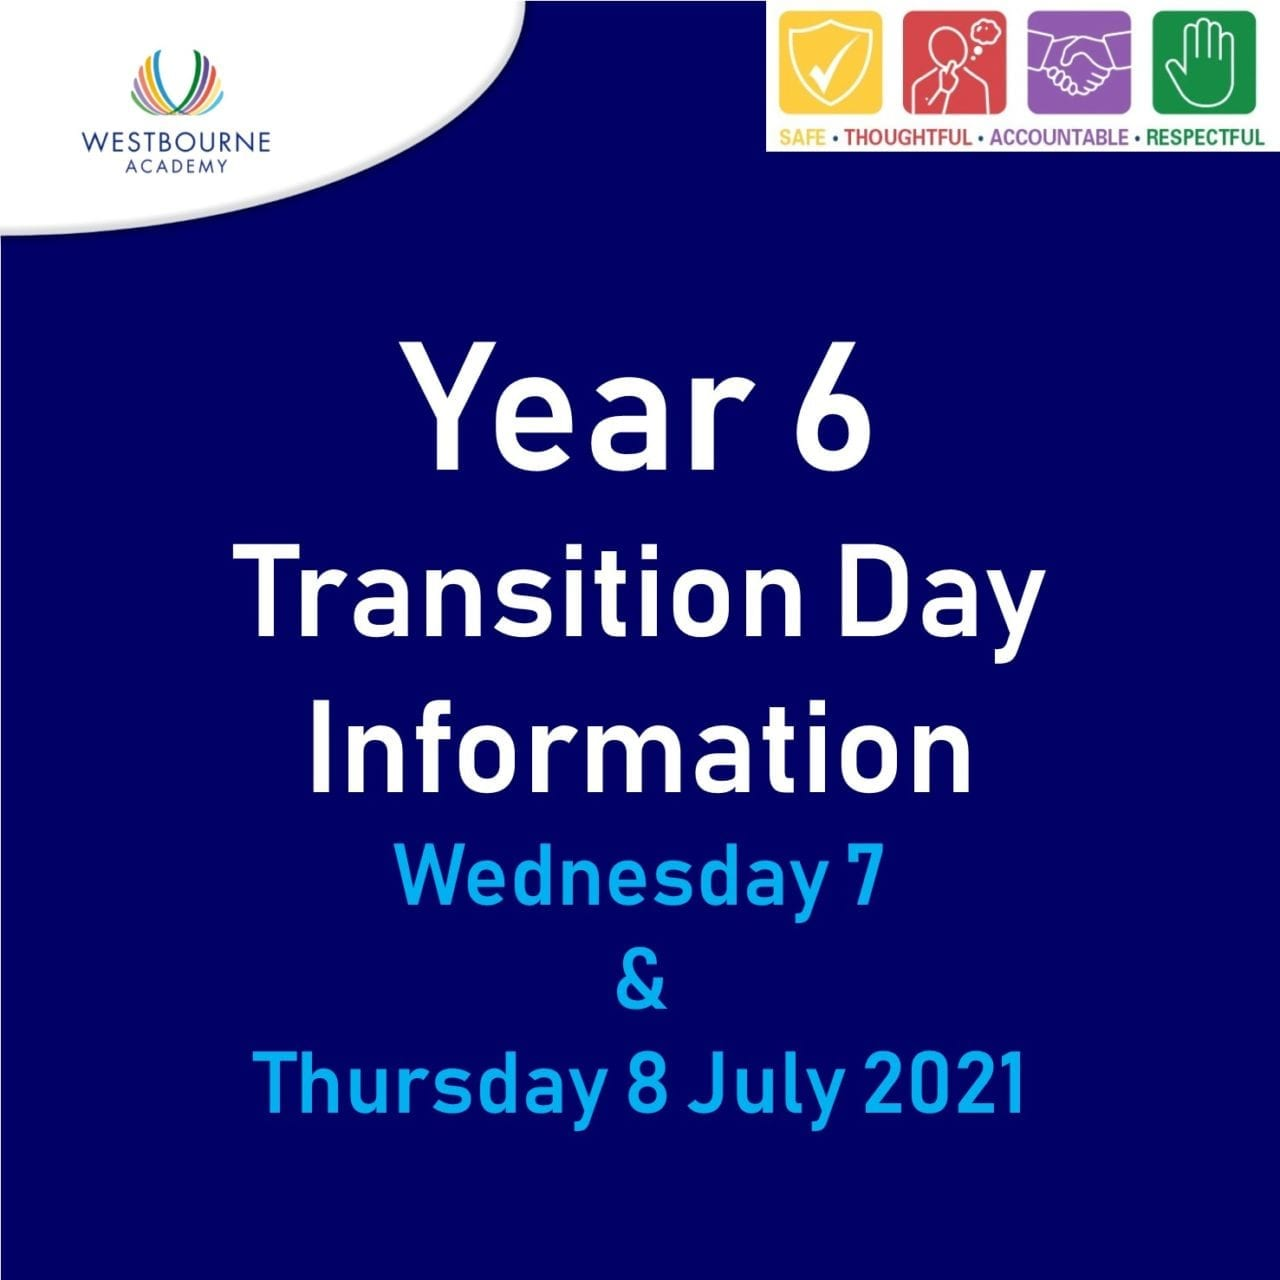 Year 6 Transition Day Info WEd 7 and Thu 8 July 2021